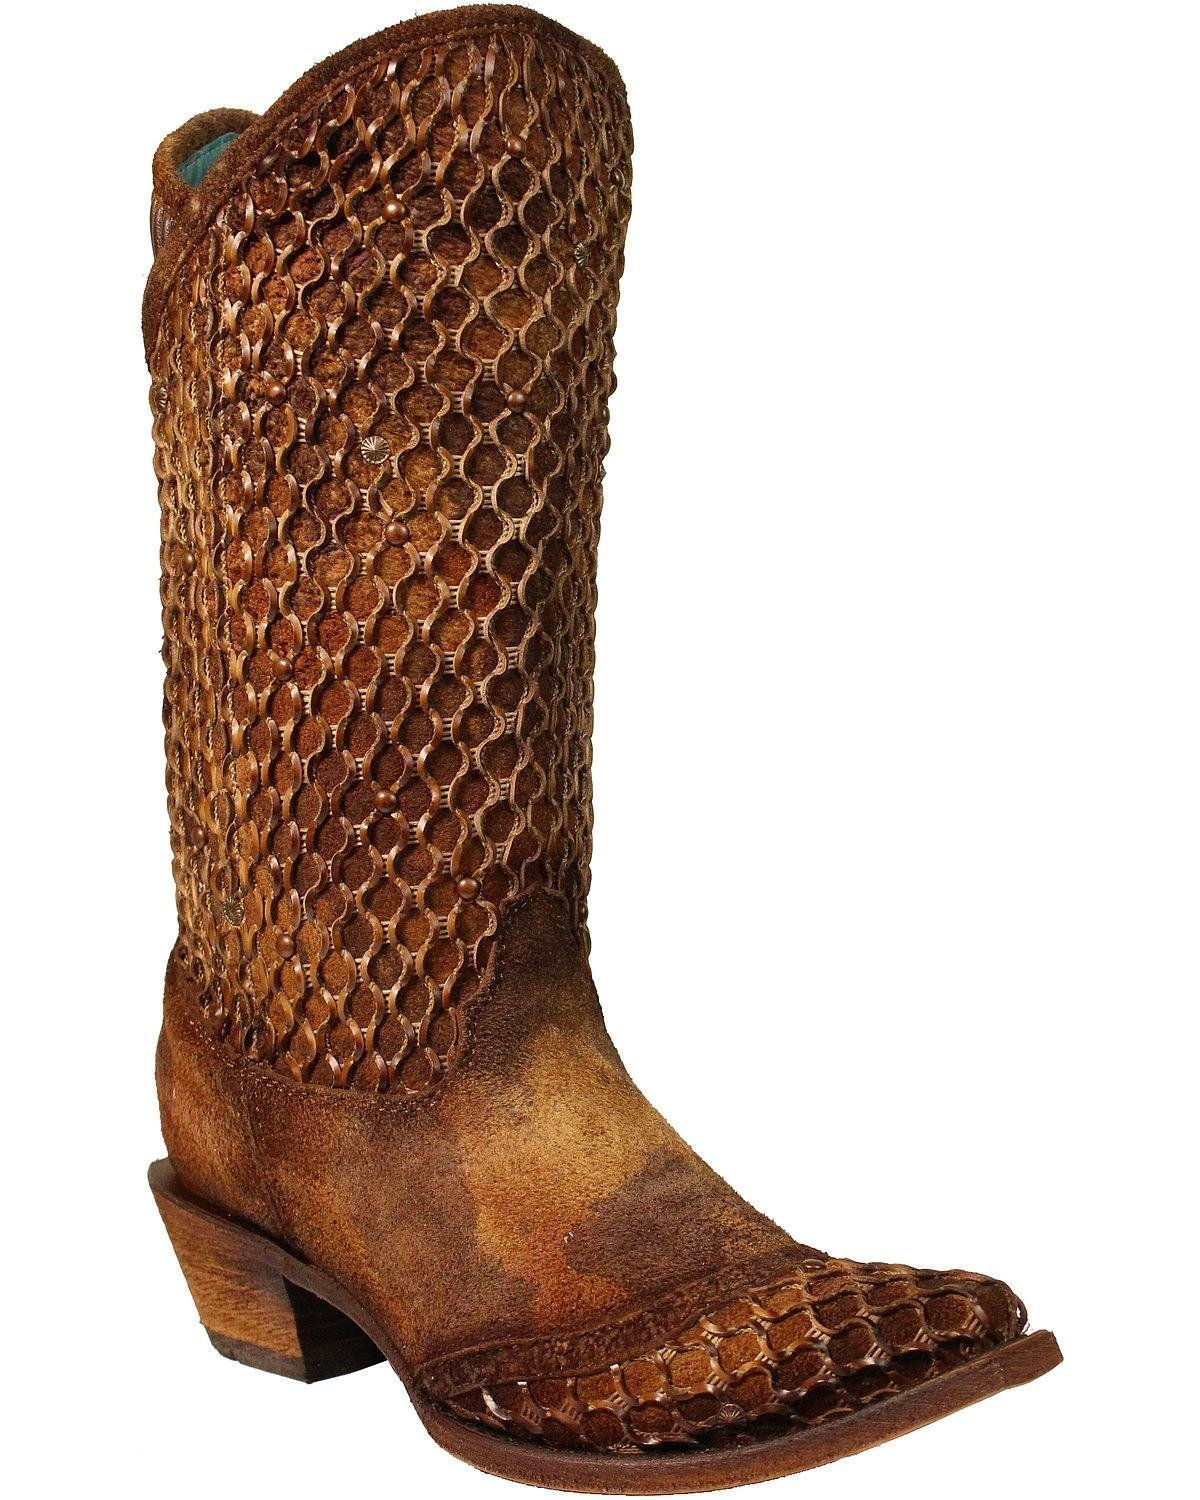 Corral Boot B073SB74PM Company Womens Camel Netting Overlay Stud Boots B073SB74PM Boot 9.5 M US|Camel 8bca5e